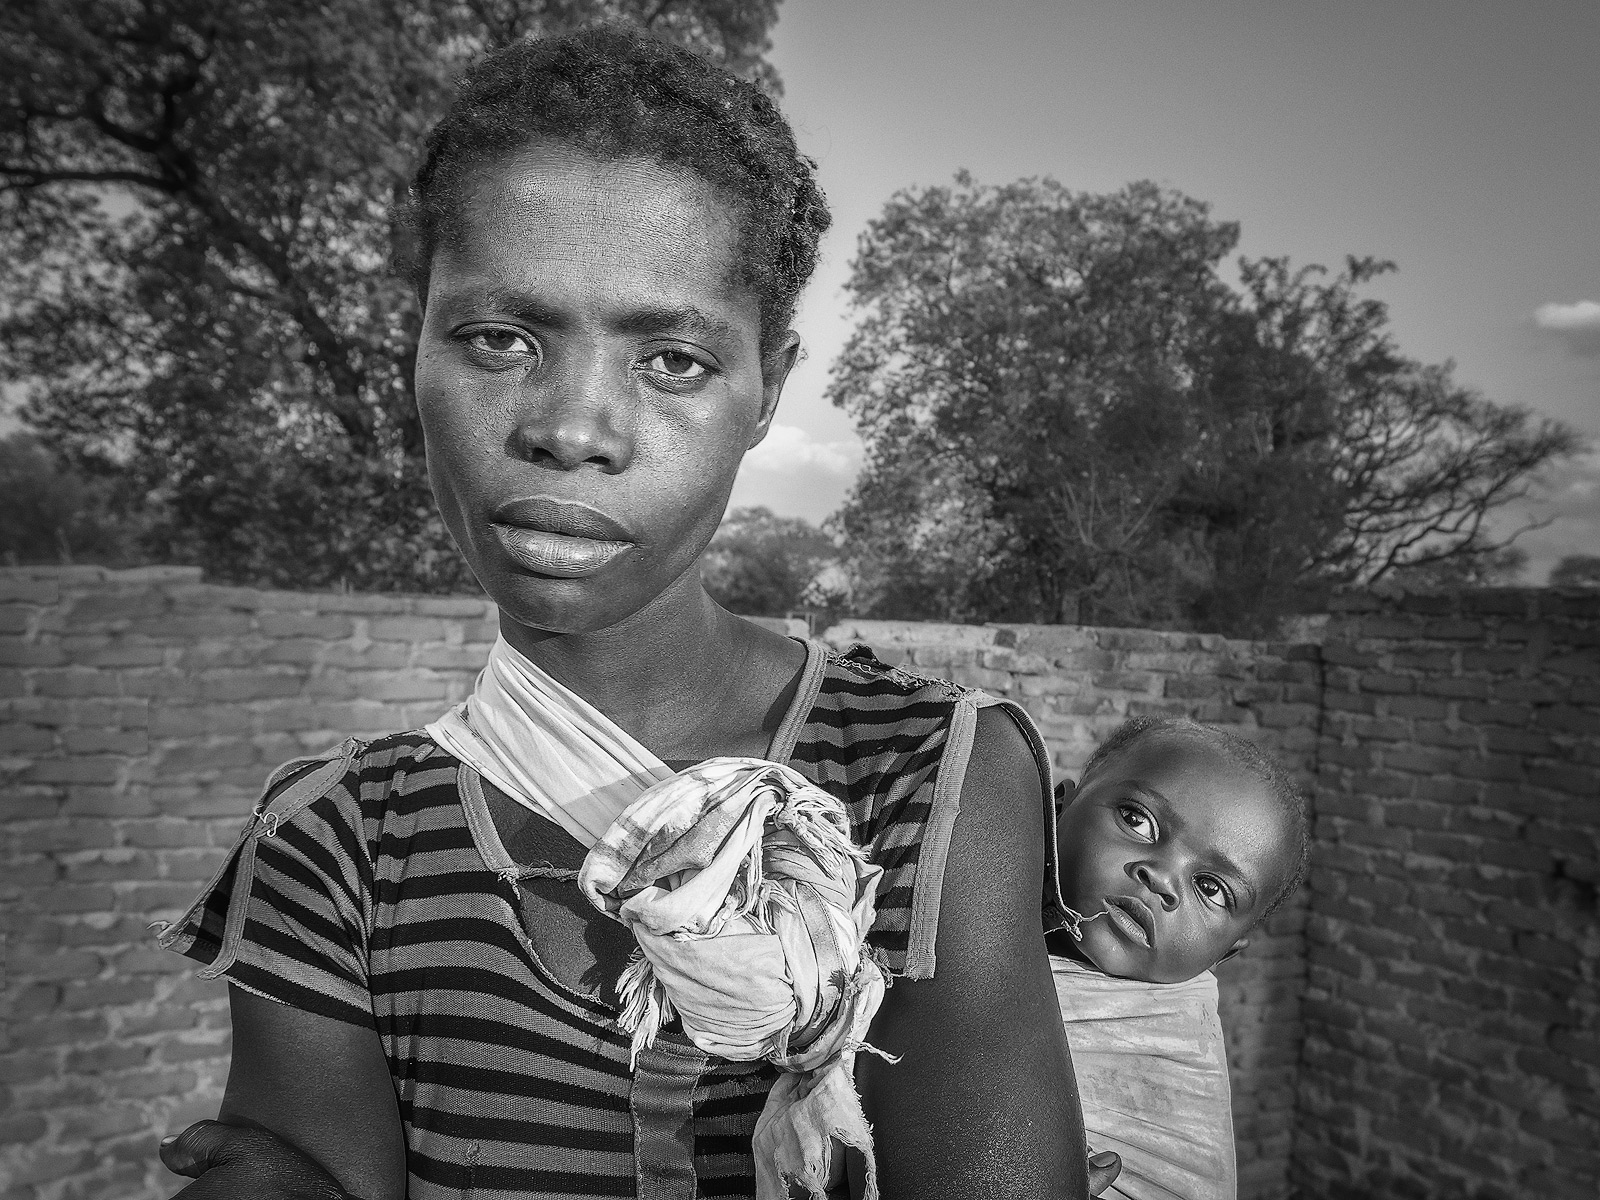 africa,african,baby,black,child,daughter,environmental portait,evening,family,female,girl,infant,juvenile,lady,malawi,malawian,mom,mother,people,portrait,woman,young, photo